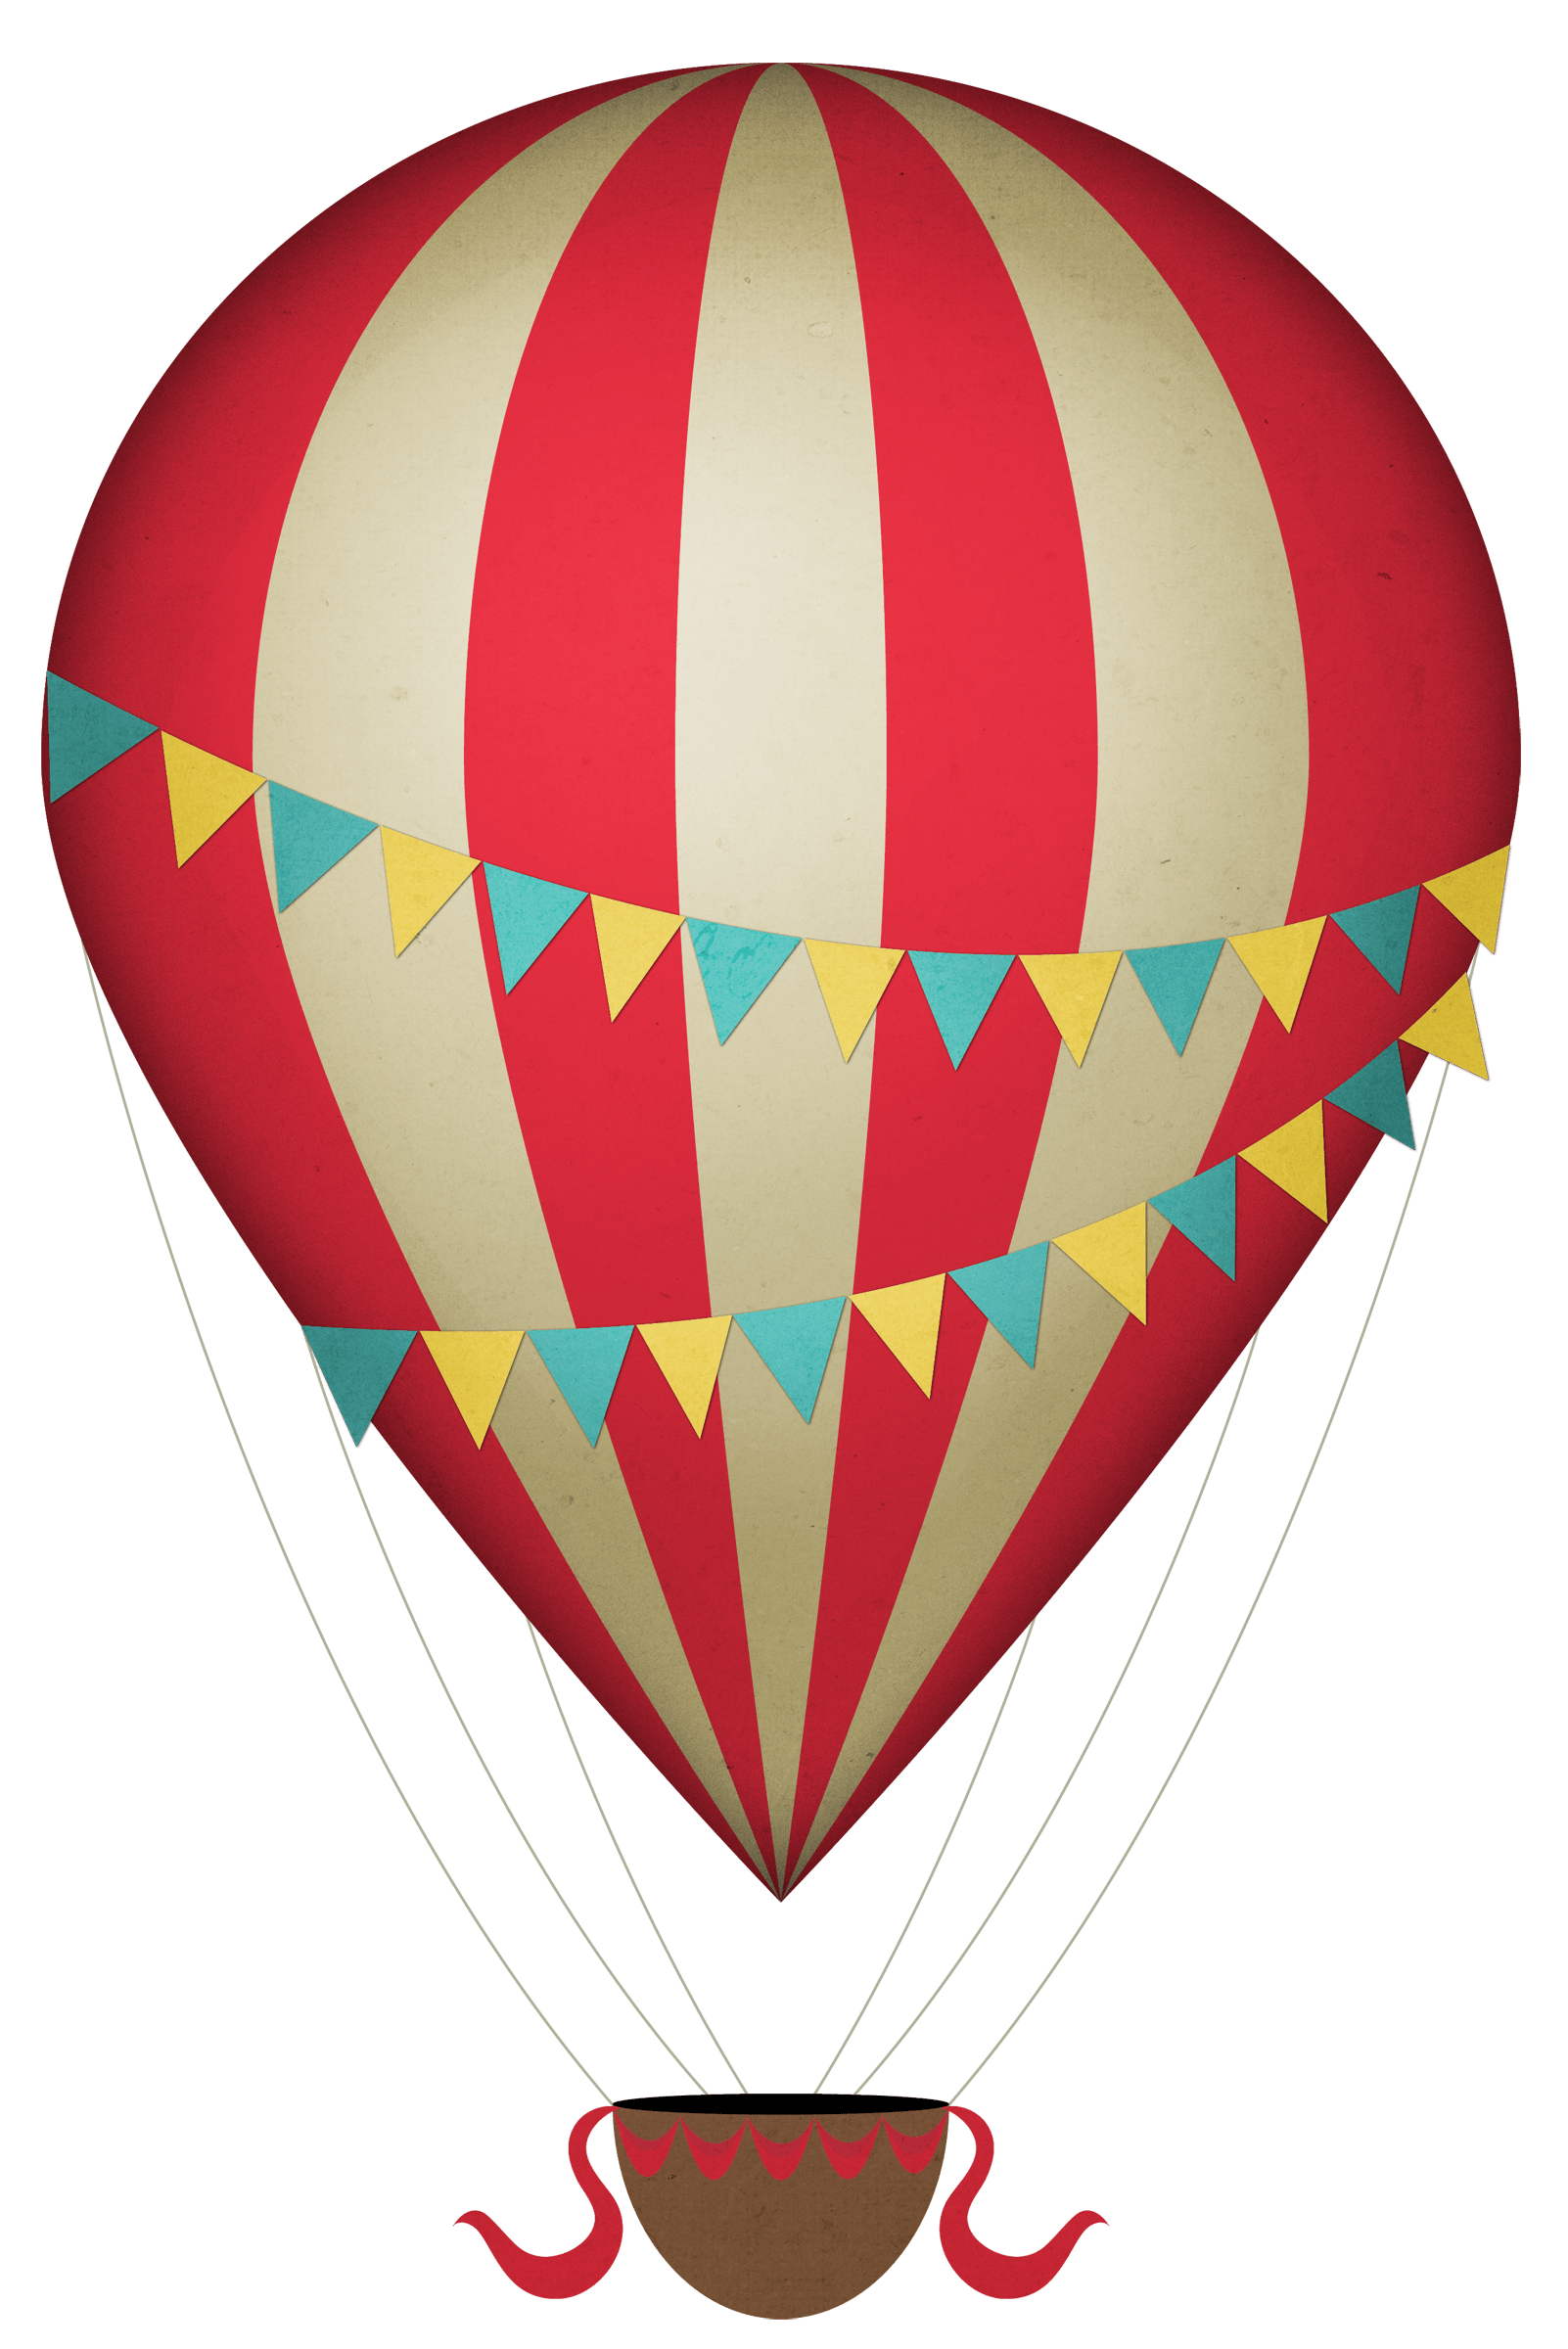 clip art download Vintage Clipart Hot Air Balloon